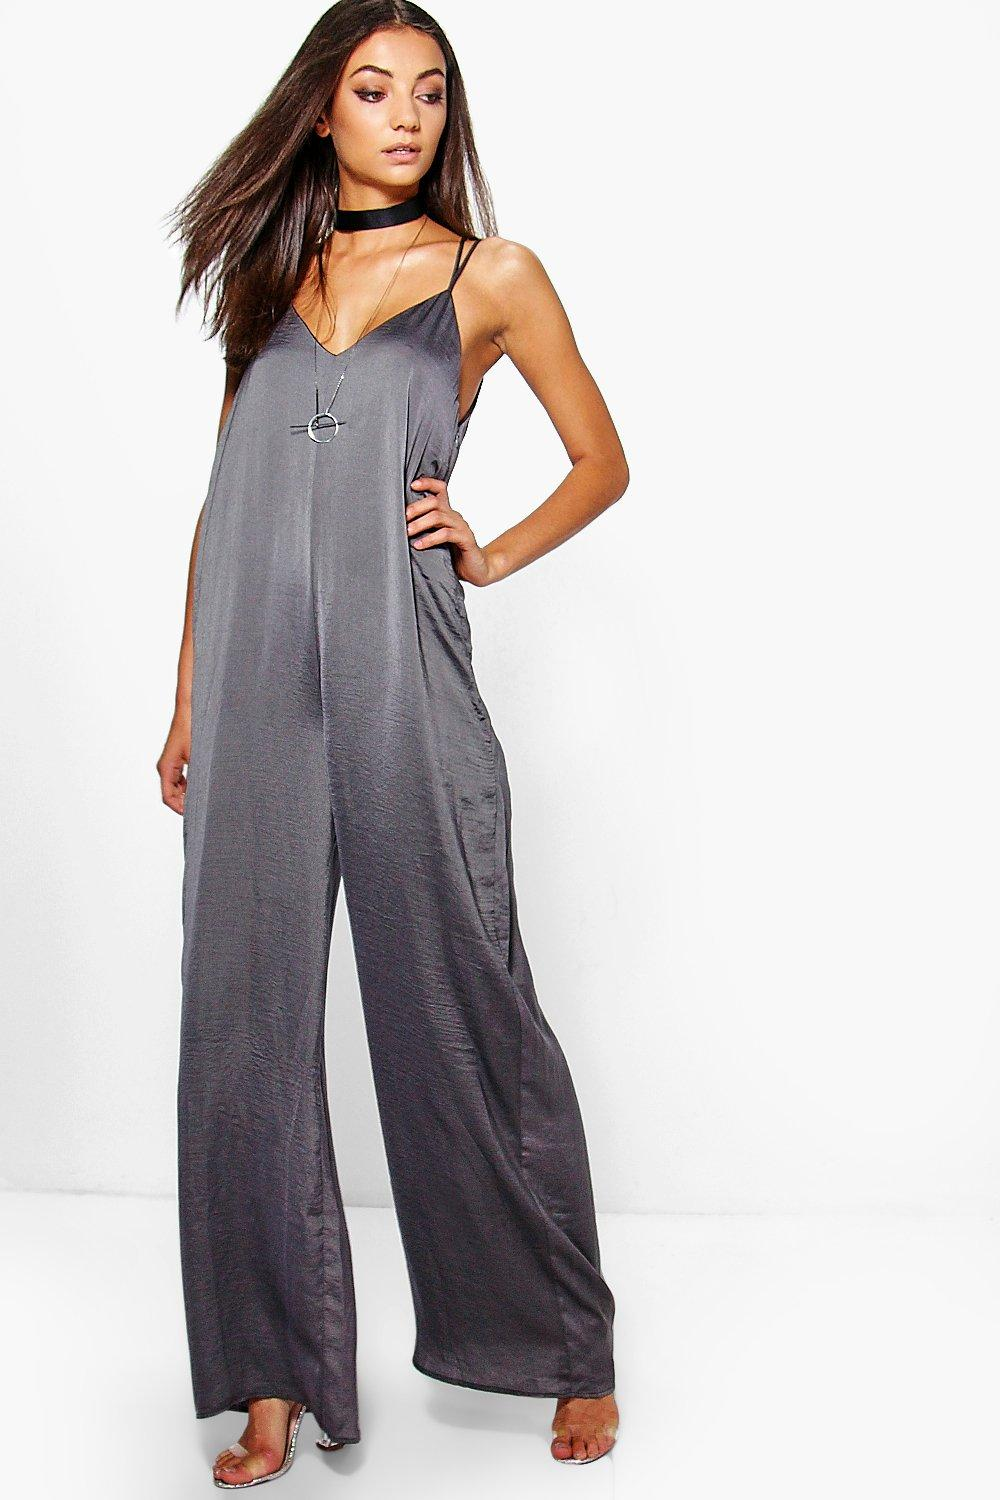 Online rompers shop